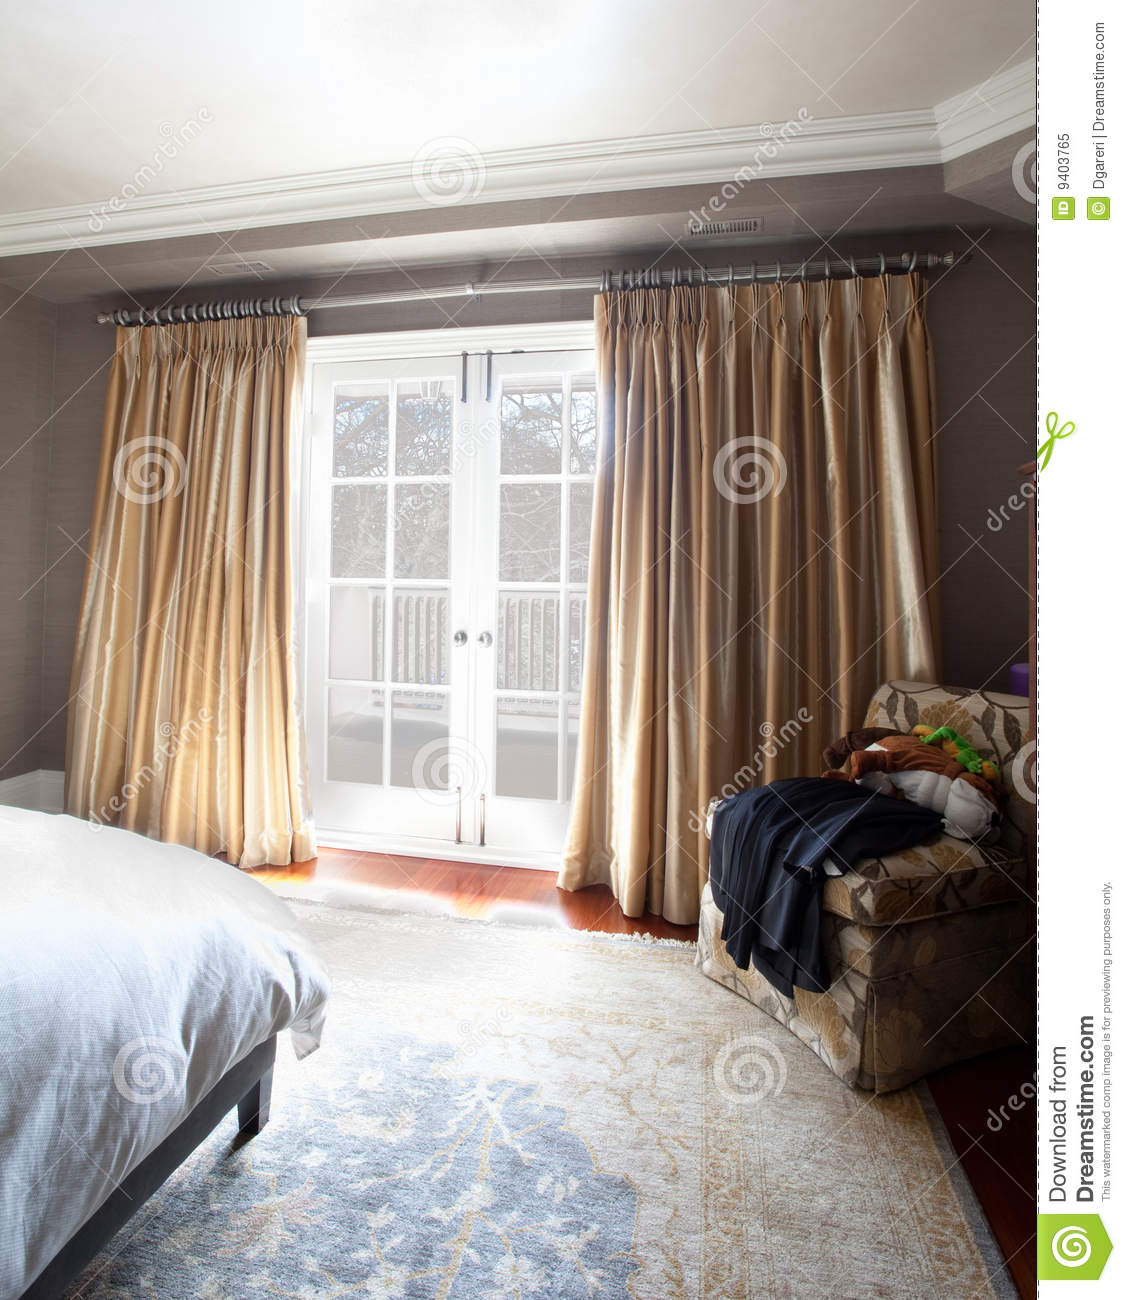 Home interior bedroom royalty free stock photo image for Well decorated bedroom